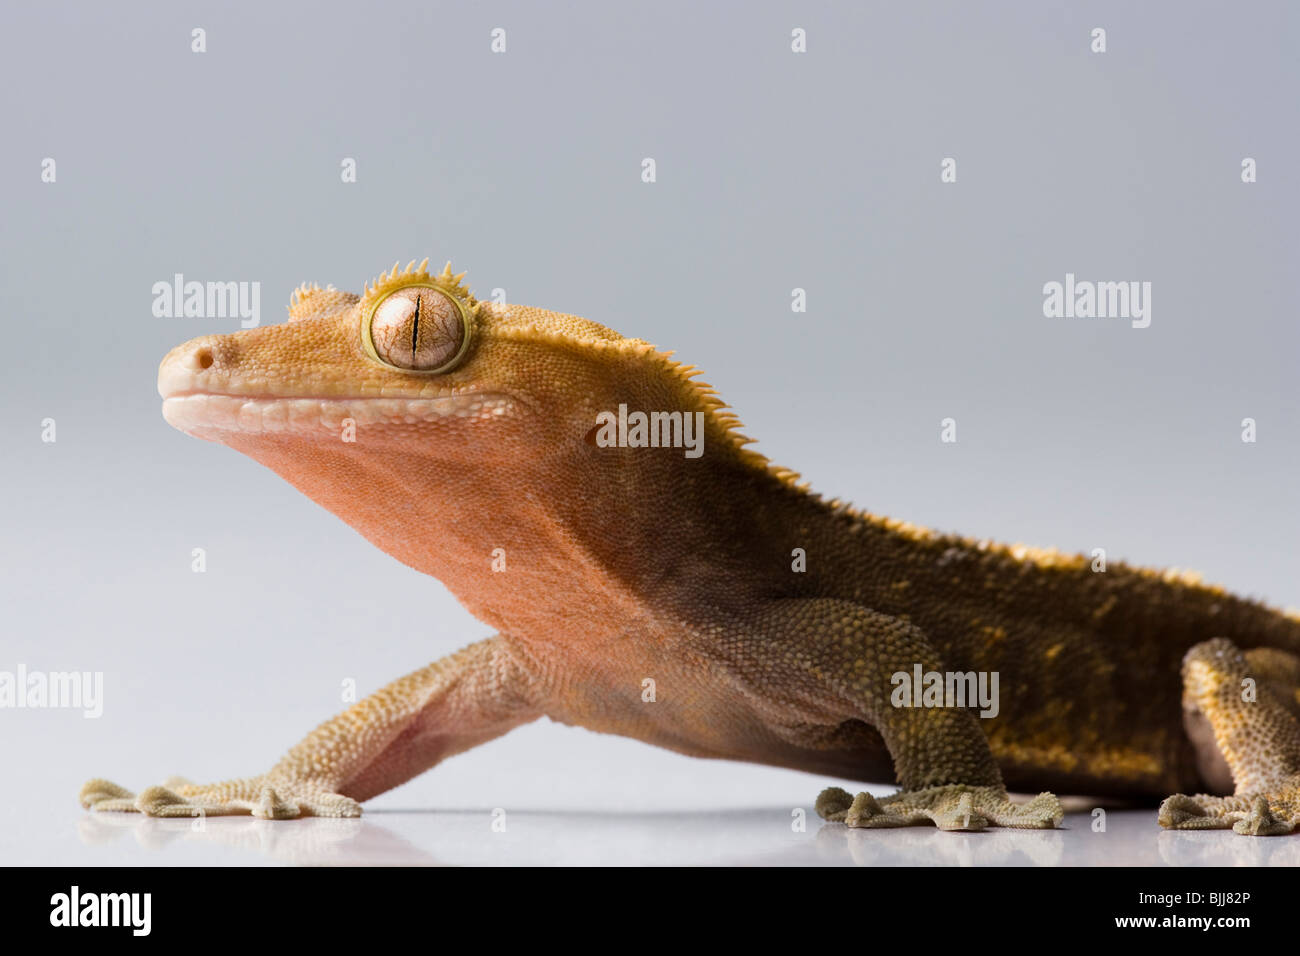 Closeup of lizard - Stock Image